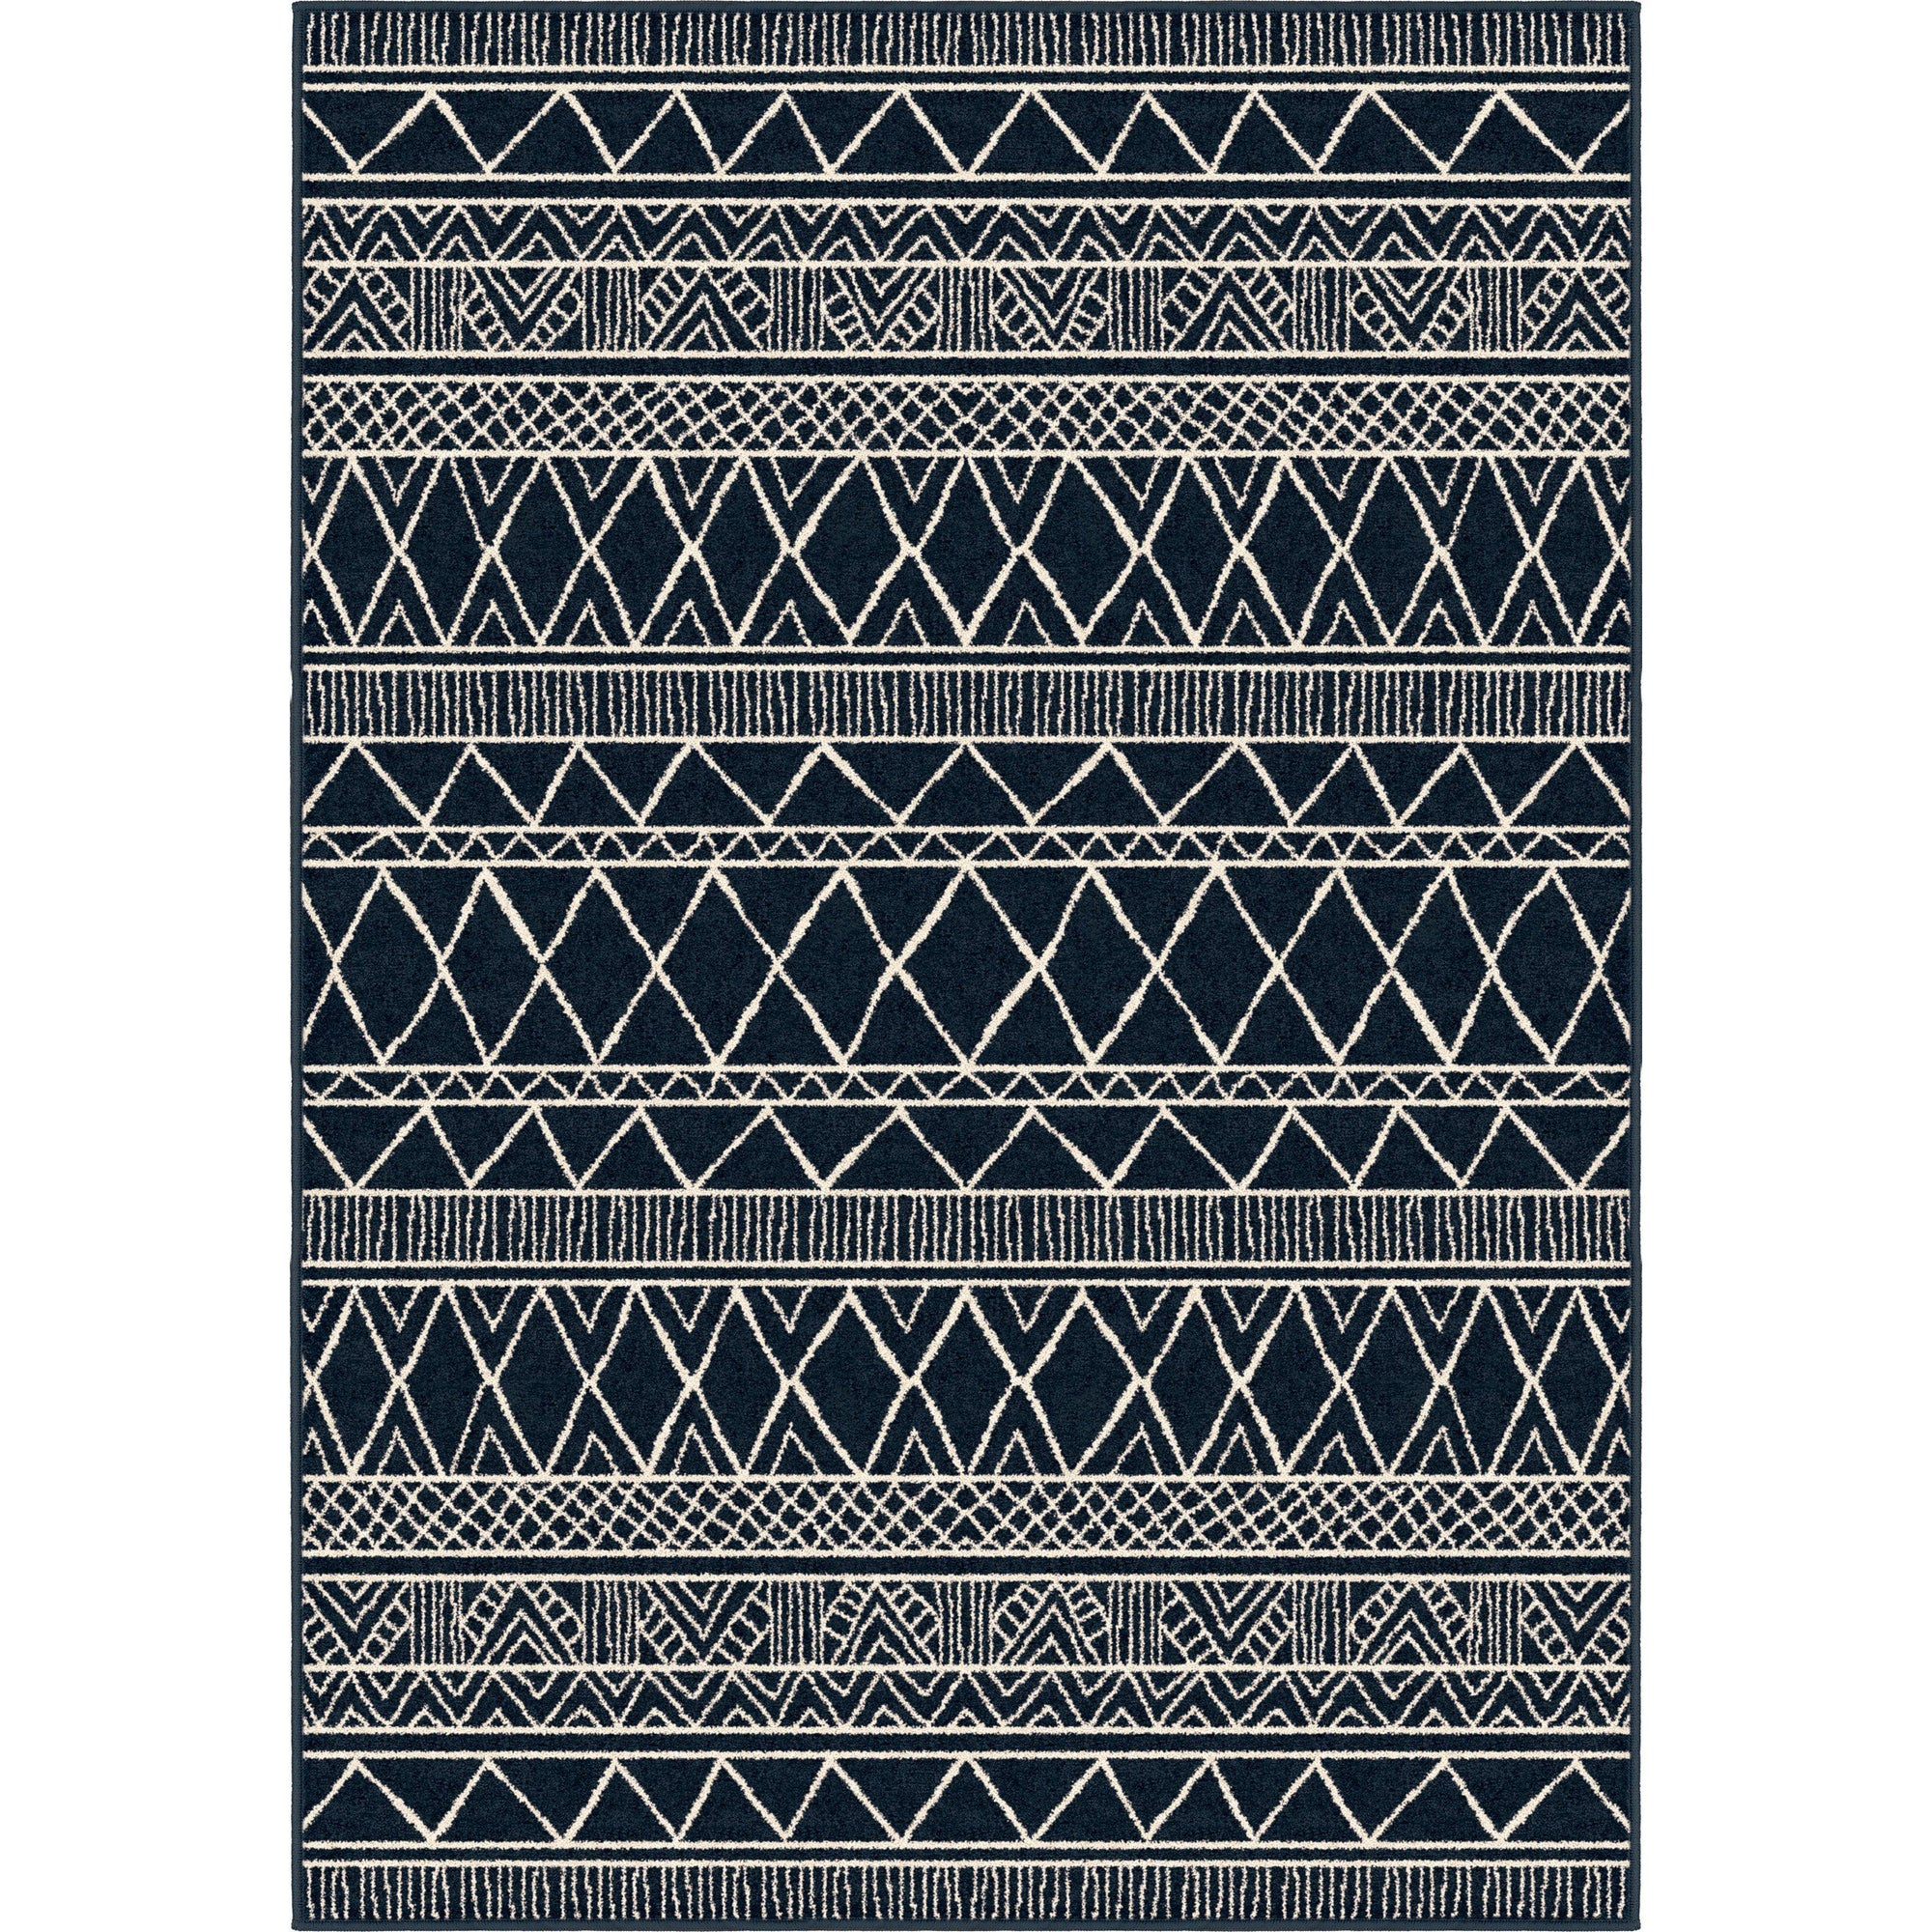 "Roundtop Grand Turk Catalina Blue-Area Rug-The Rug Truck-5'1"" x 7'6""-The Rug Truck"